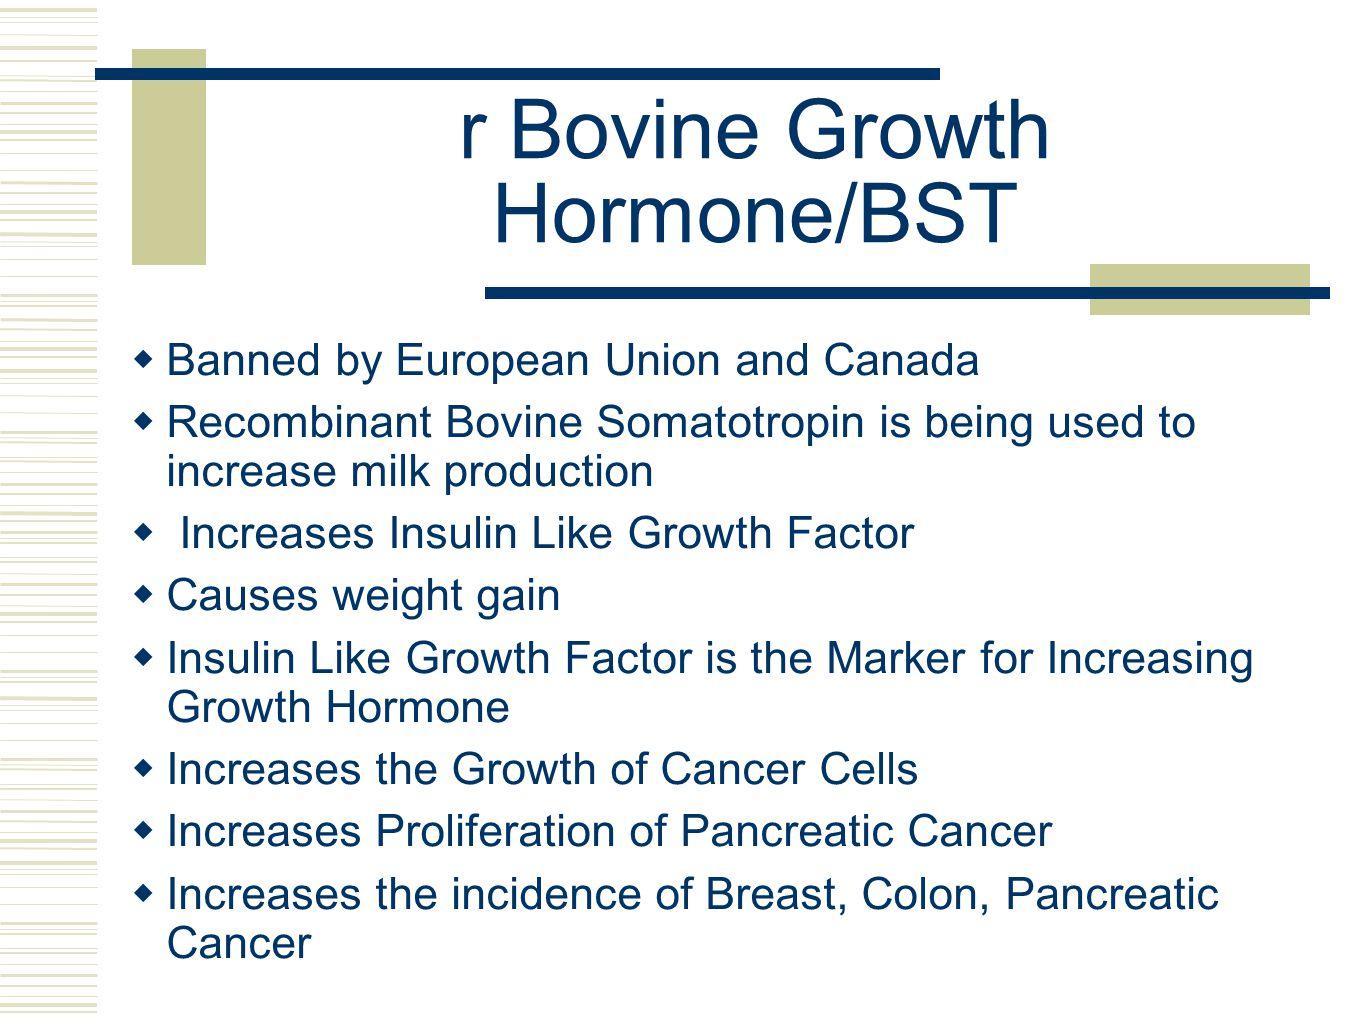 r Bovine Growth Hormone/BST  Banned by European Union and Canada  Recombinant Bovine Somatotropin is being used to increase milk production  Increases Insulin Like Growth Factor  Causes weight gain  Insulin Like Growth Factor is the Marker for Increasing Growth Hormone  Increases the Growth of Cancer Cells  Increases Proliferation of Pancreatic Cancer  Increases the incidence of Breast, Colon, Pancreatic Cancer